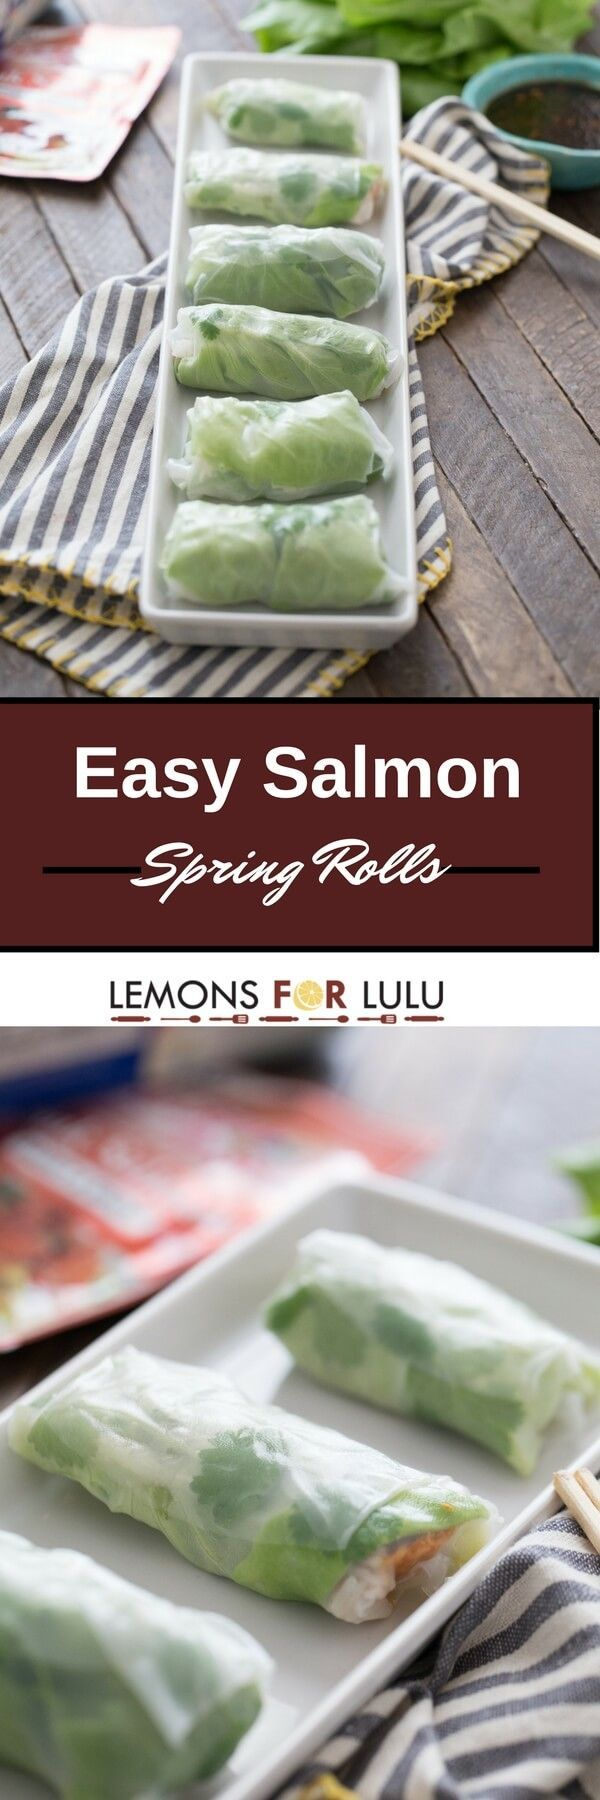 Spring rolls are so light and tasty. These salmon filled rolls are a snap to prepare. You'll find yourself making these spring rolls all the time!